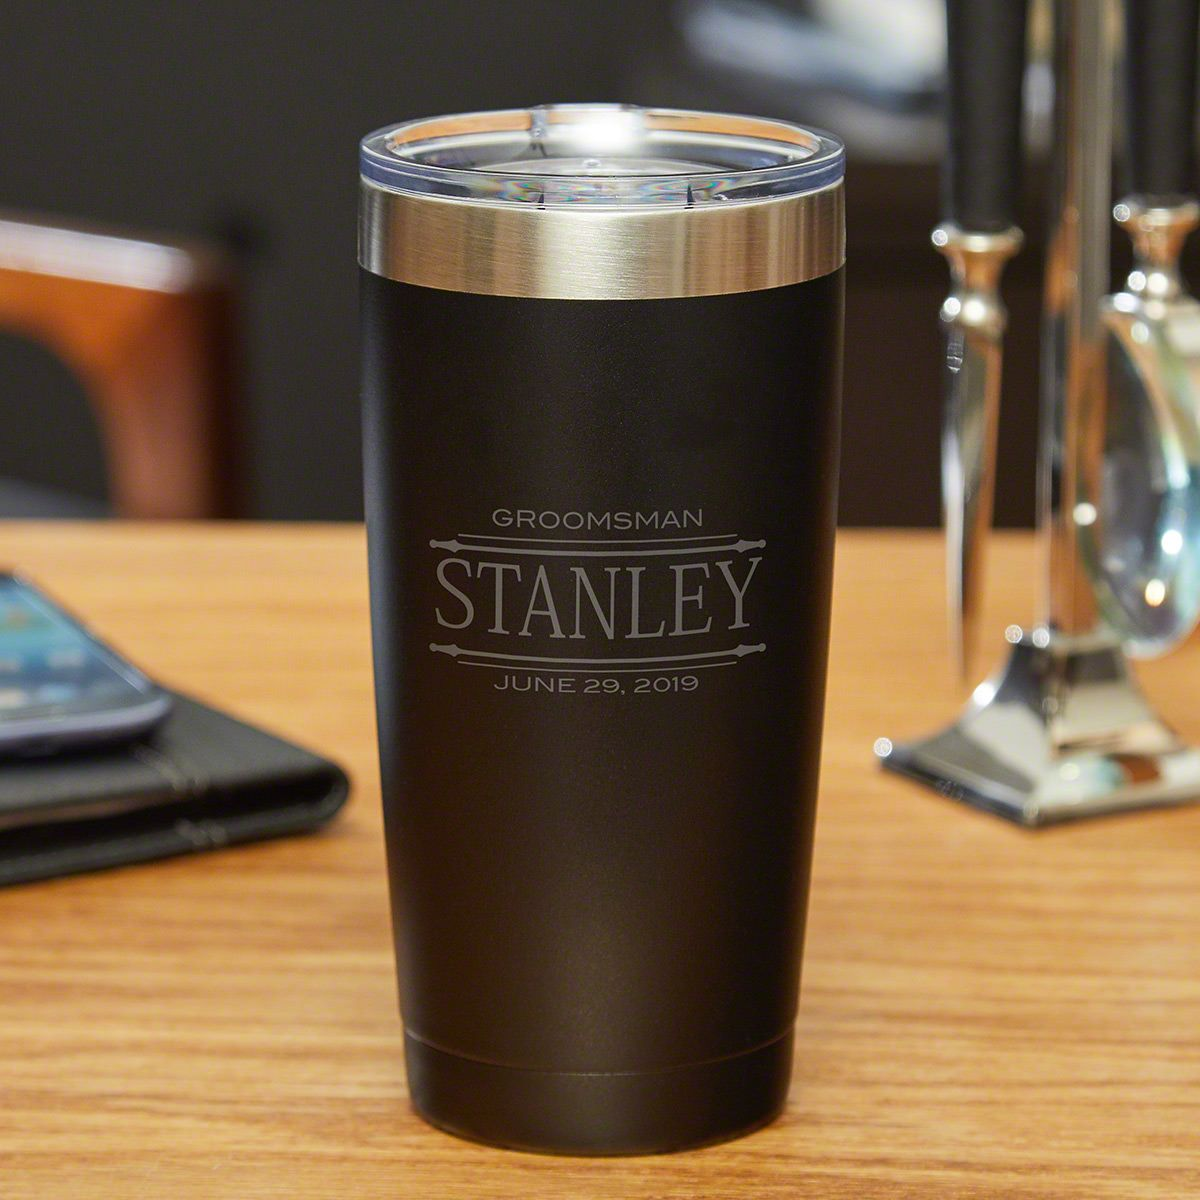 Stanford Stainless Steel Insulated Yeti Tumbler Gift for Groomsmen